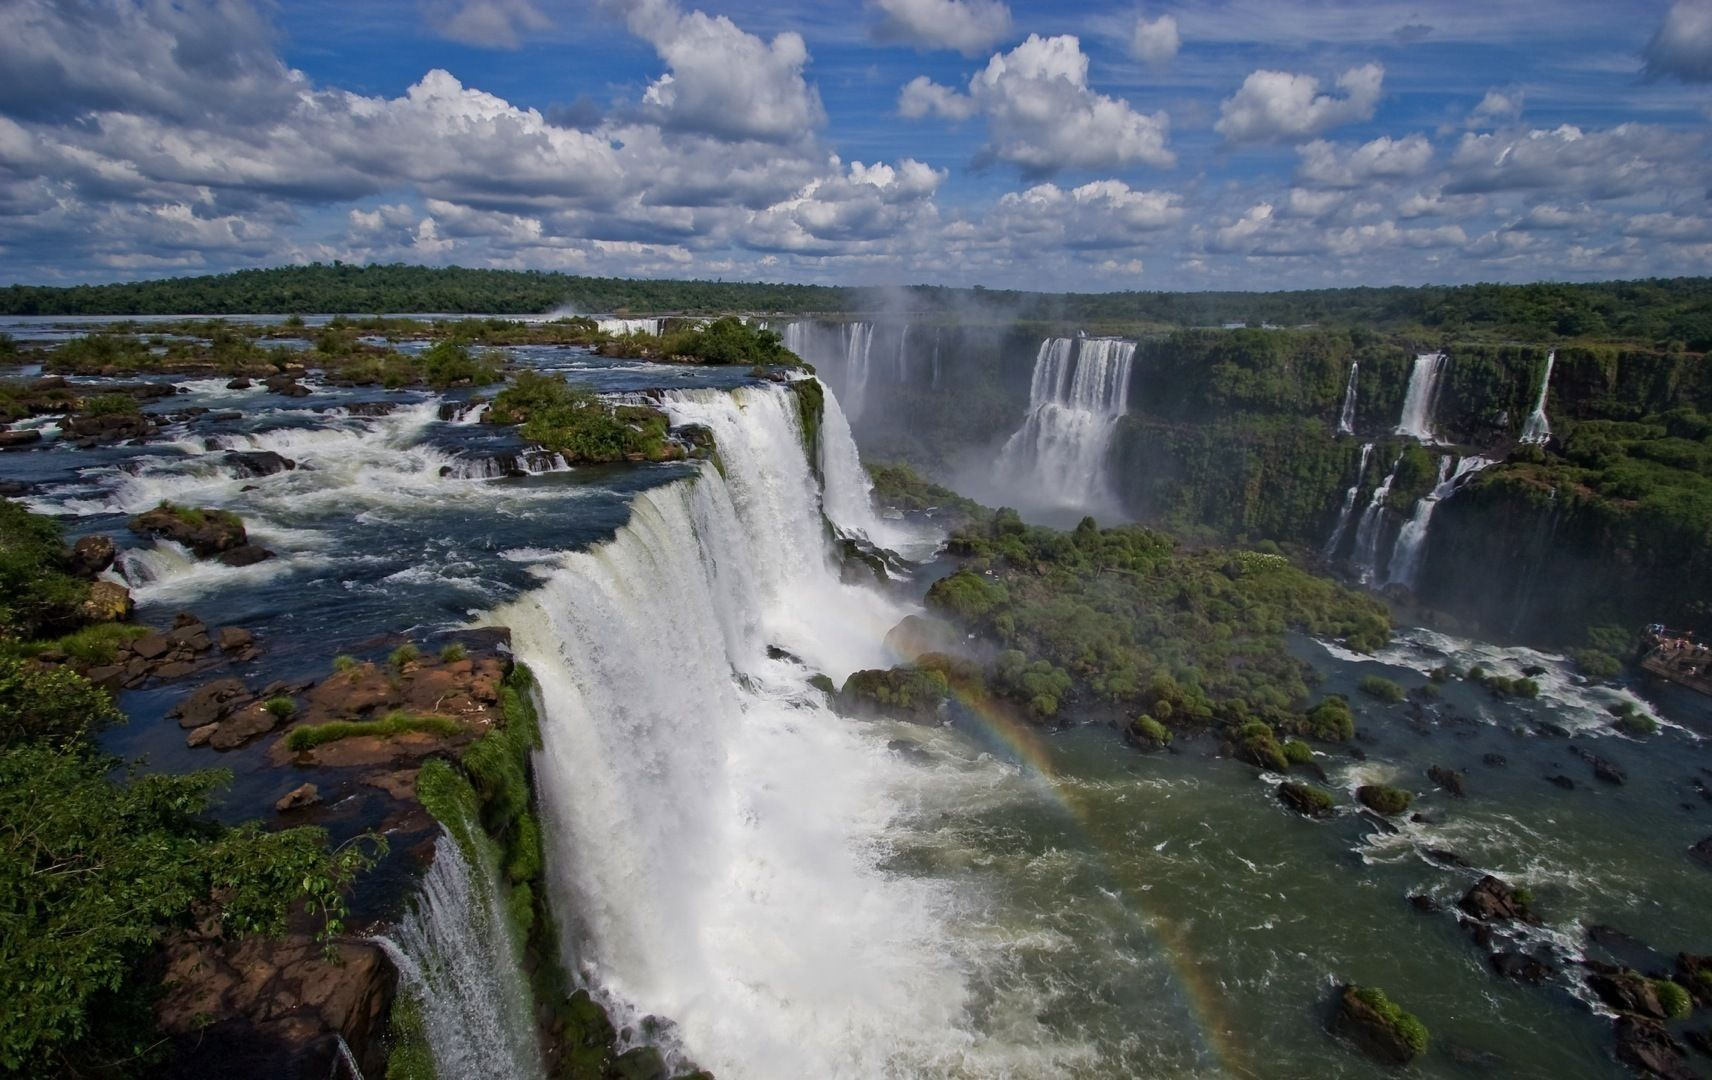 Iguazu Falls Iguazu Falls Argentina Tourist Spots Around The - 10 amazing things to see in iguazu national park argentina